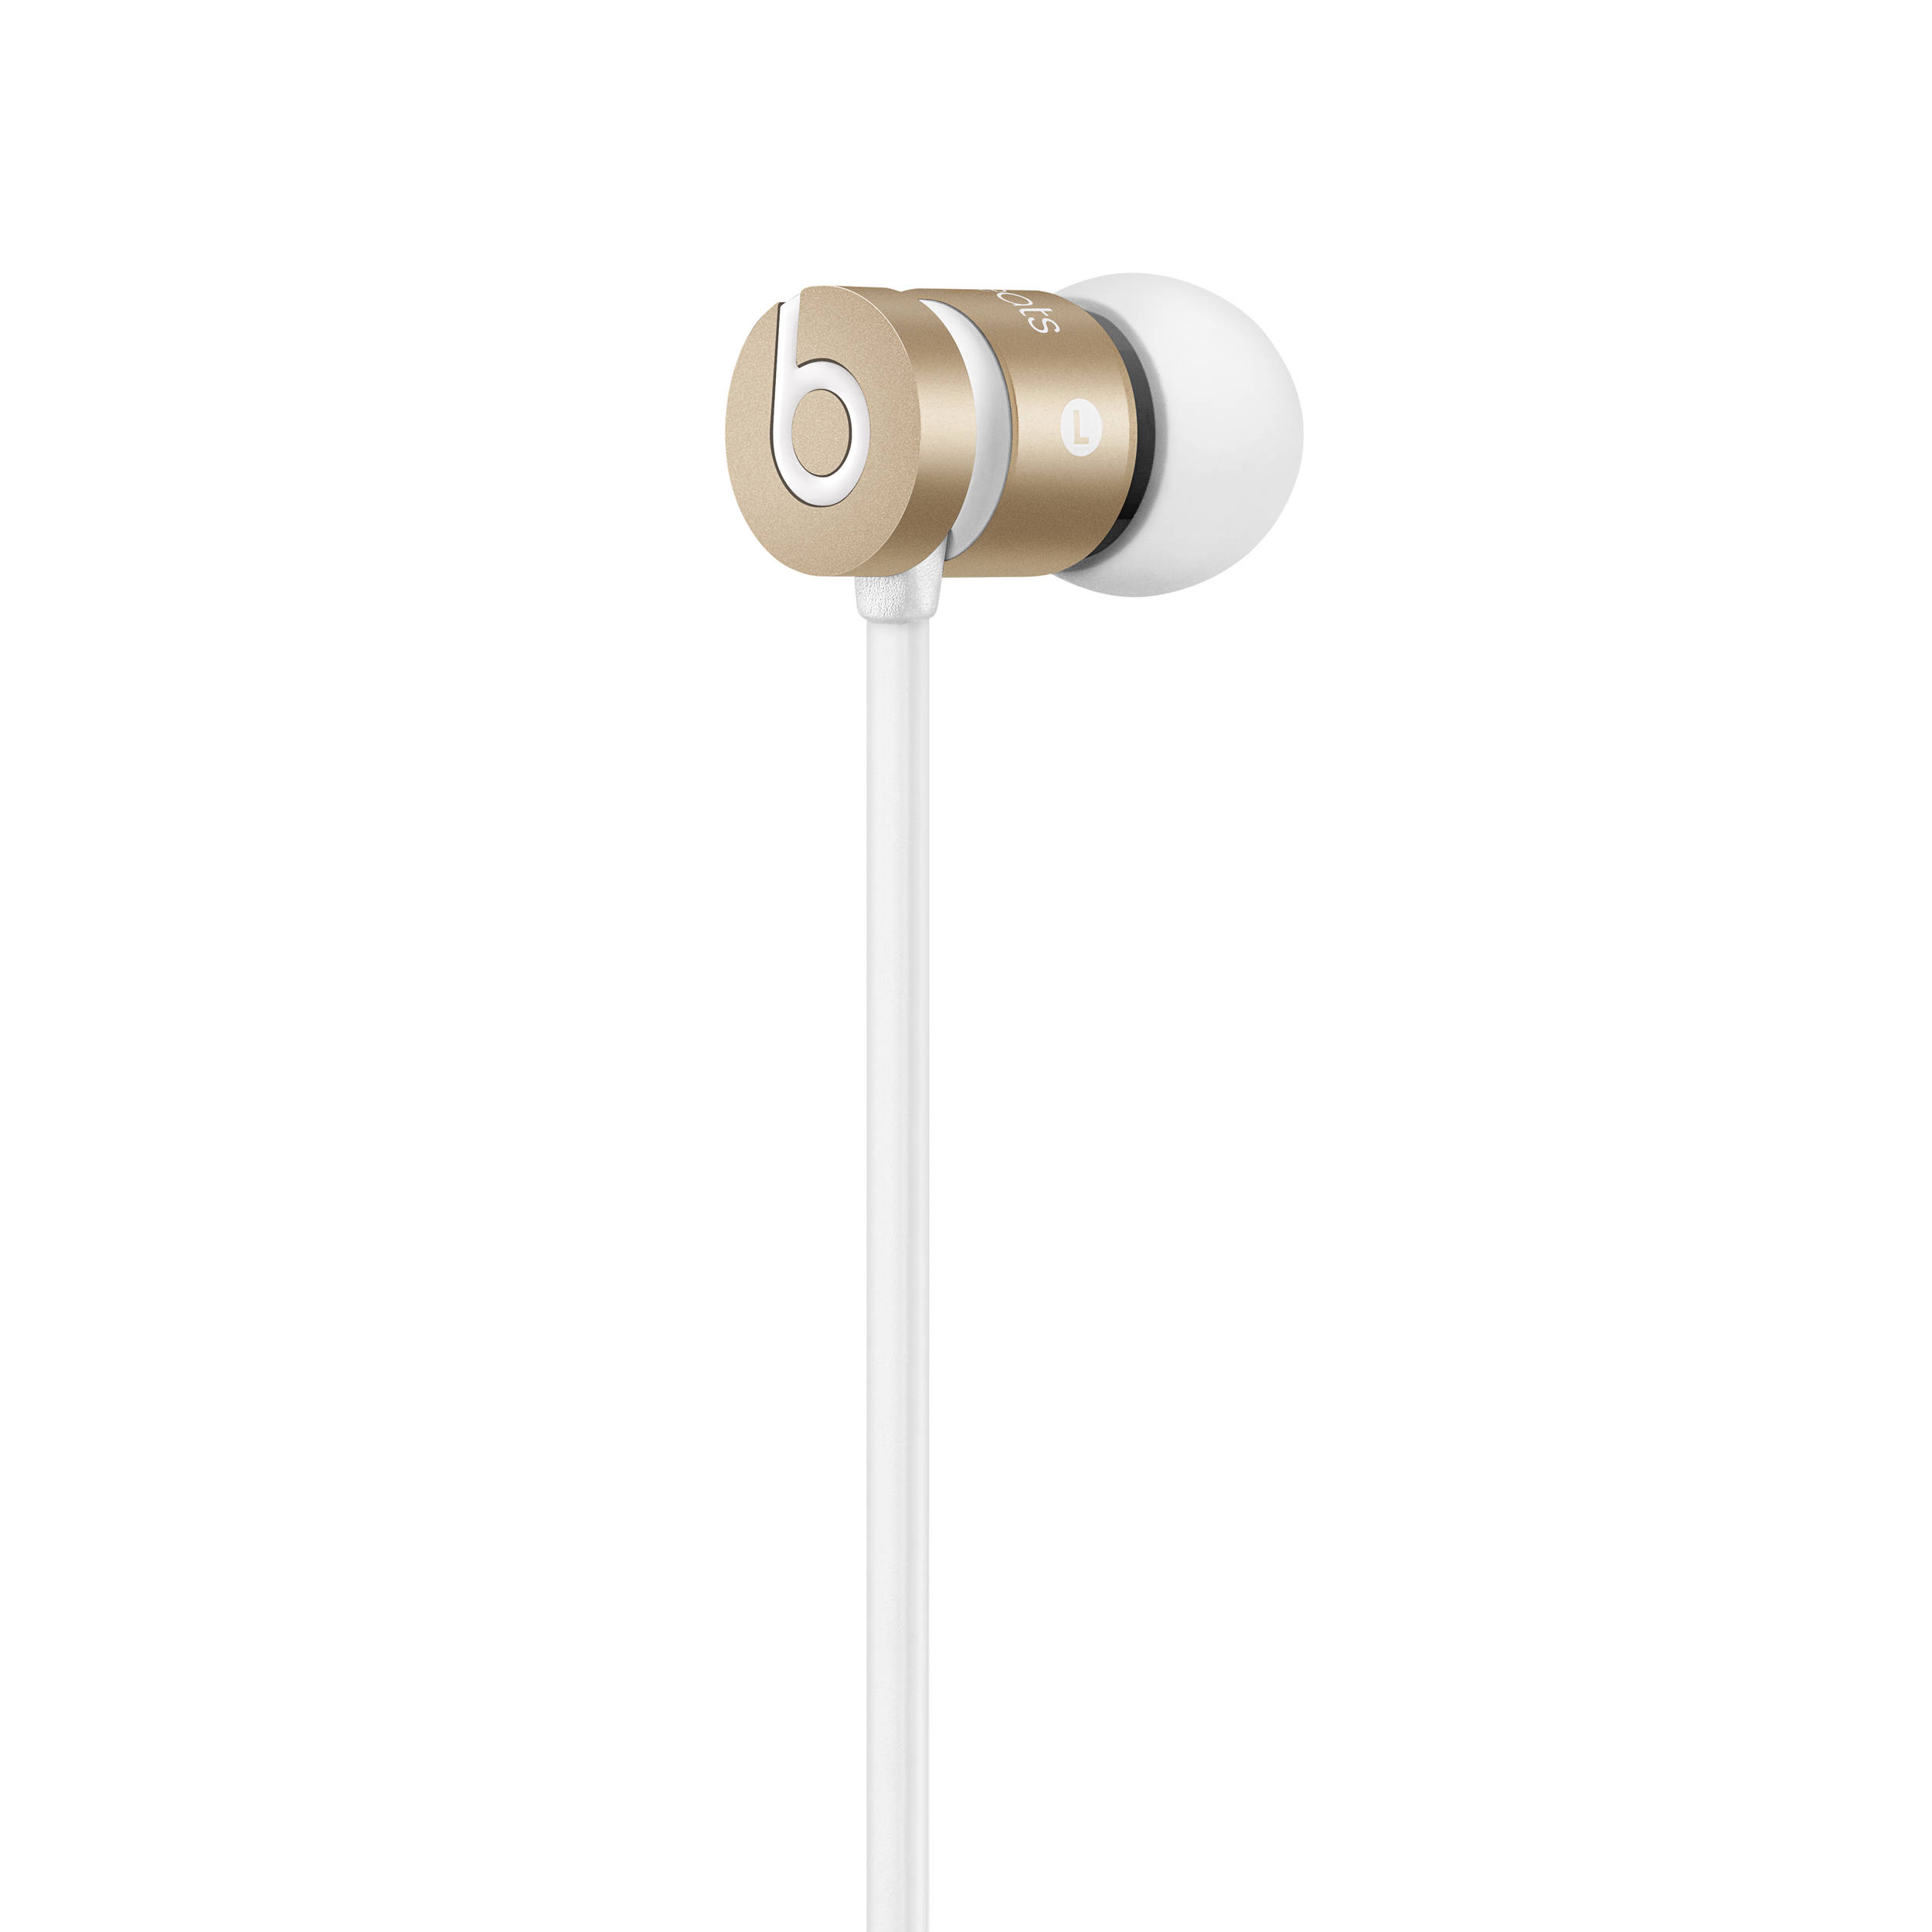 Beats by Dr. Dre urBeats2 In-Ear Headphones (Gold) MK9X2AM B B H 778278c96